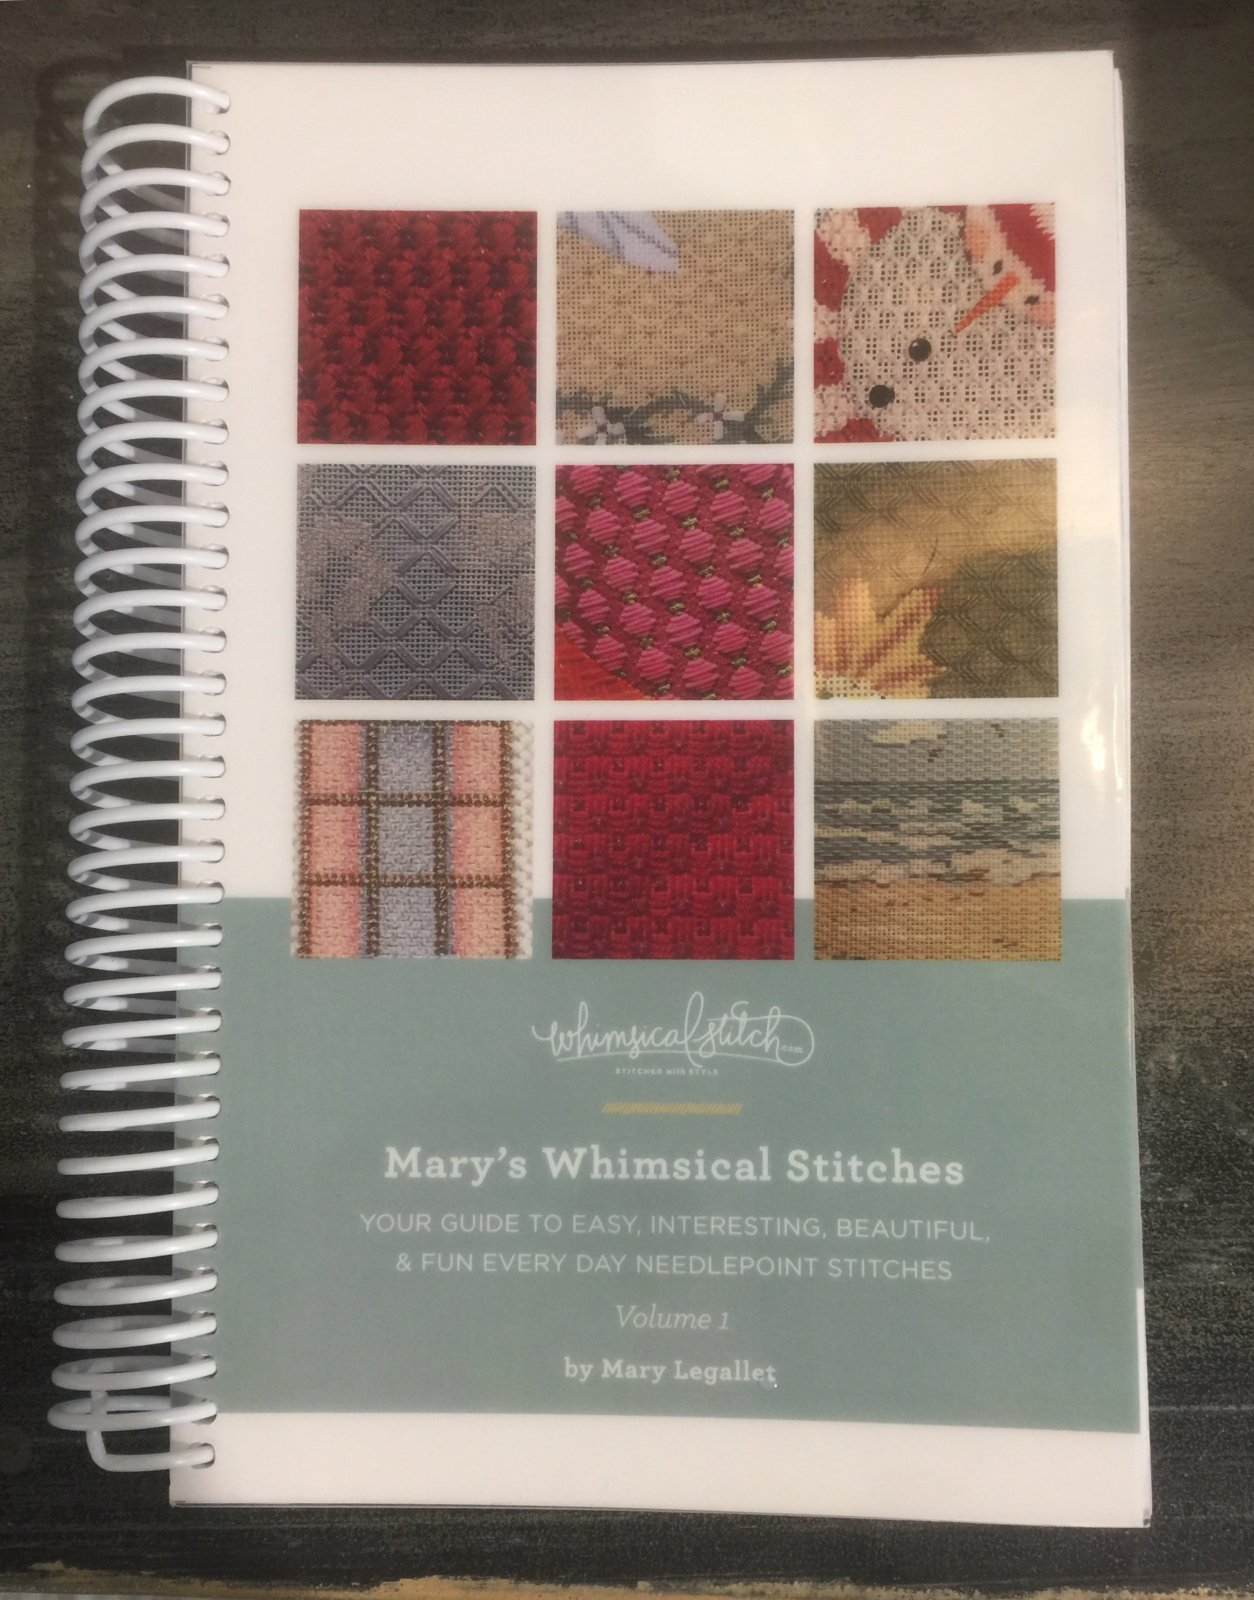 Mary's Whimsical Stitches Vol. 1